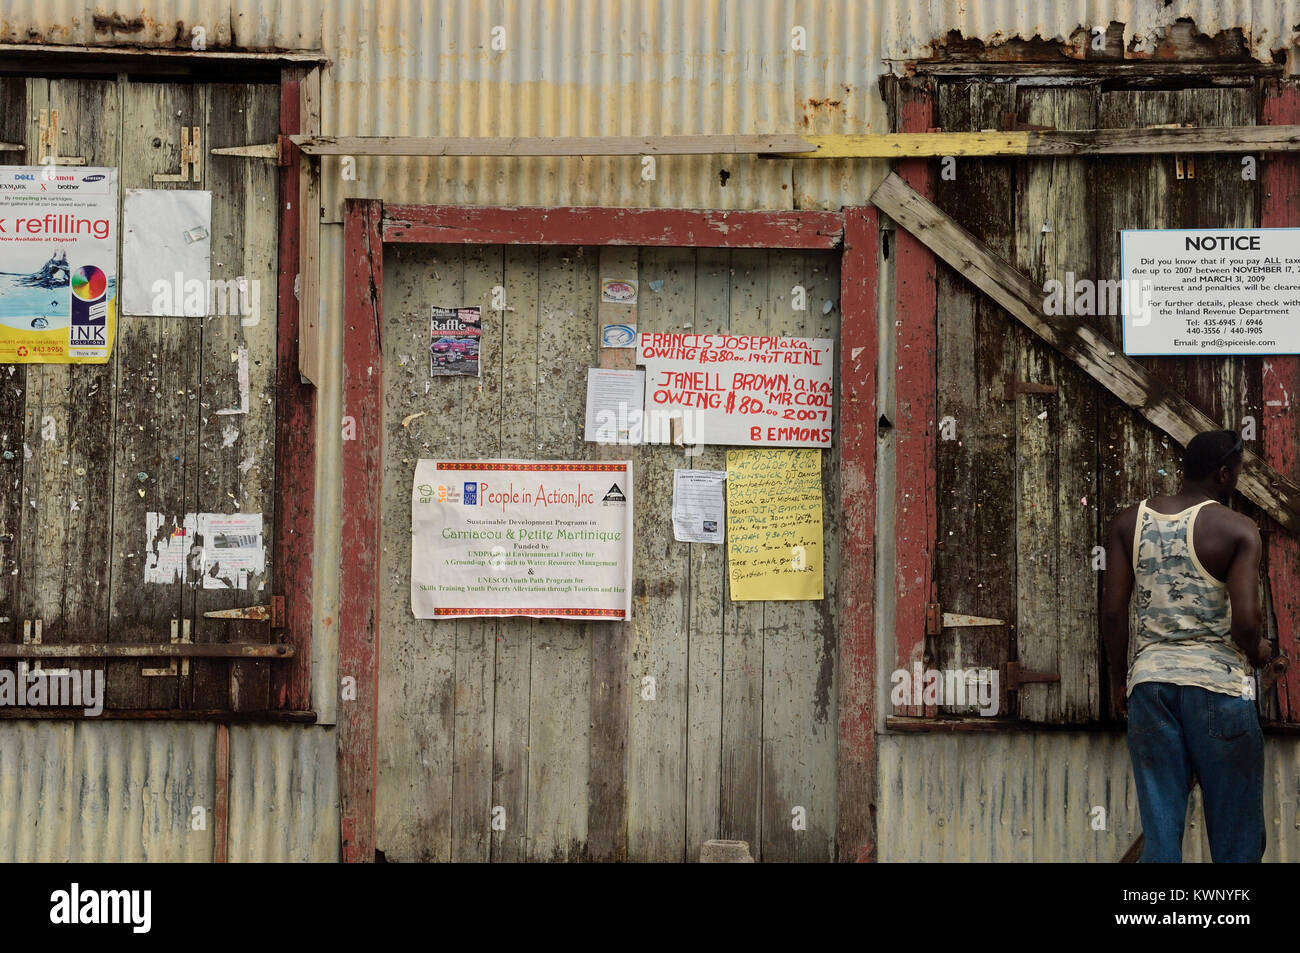 Notices pinned to an old building,Hillsborough, Carriacou, Grenadine Islands, Caribbean - Stock Image